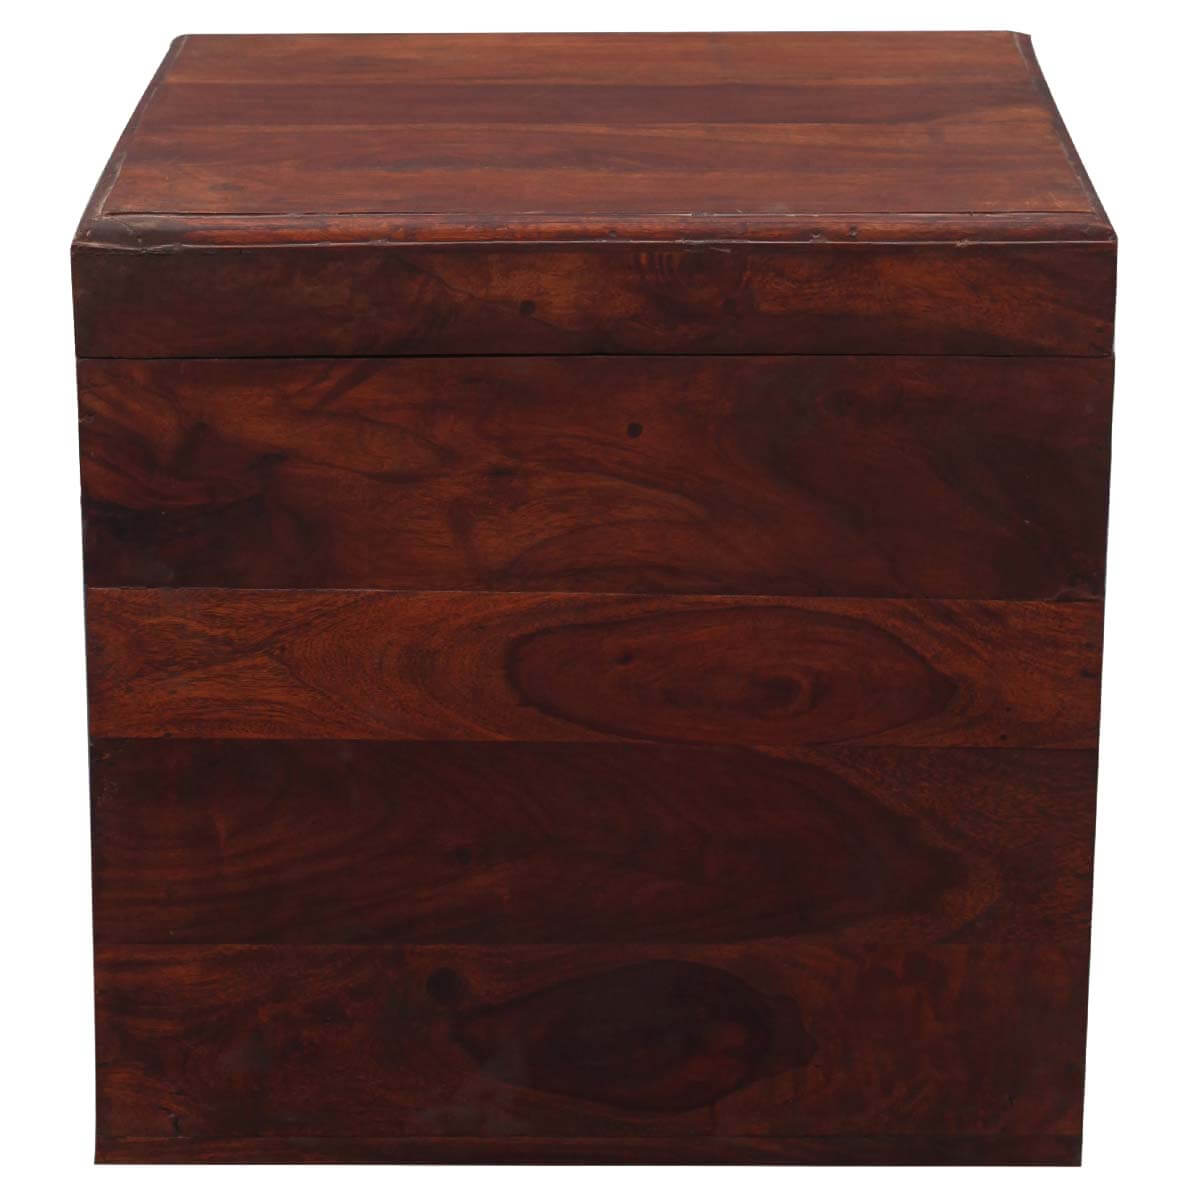 Santa Fe 18 Cube Solid Wood Storage Box End Table